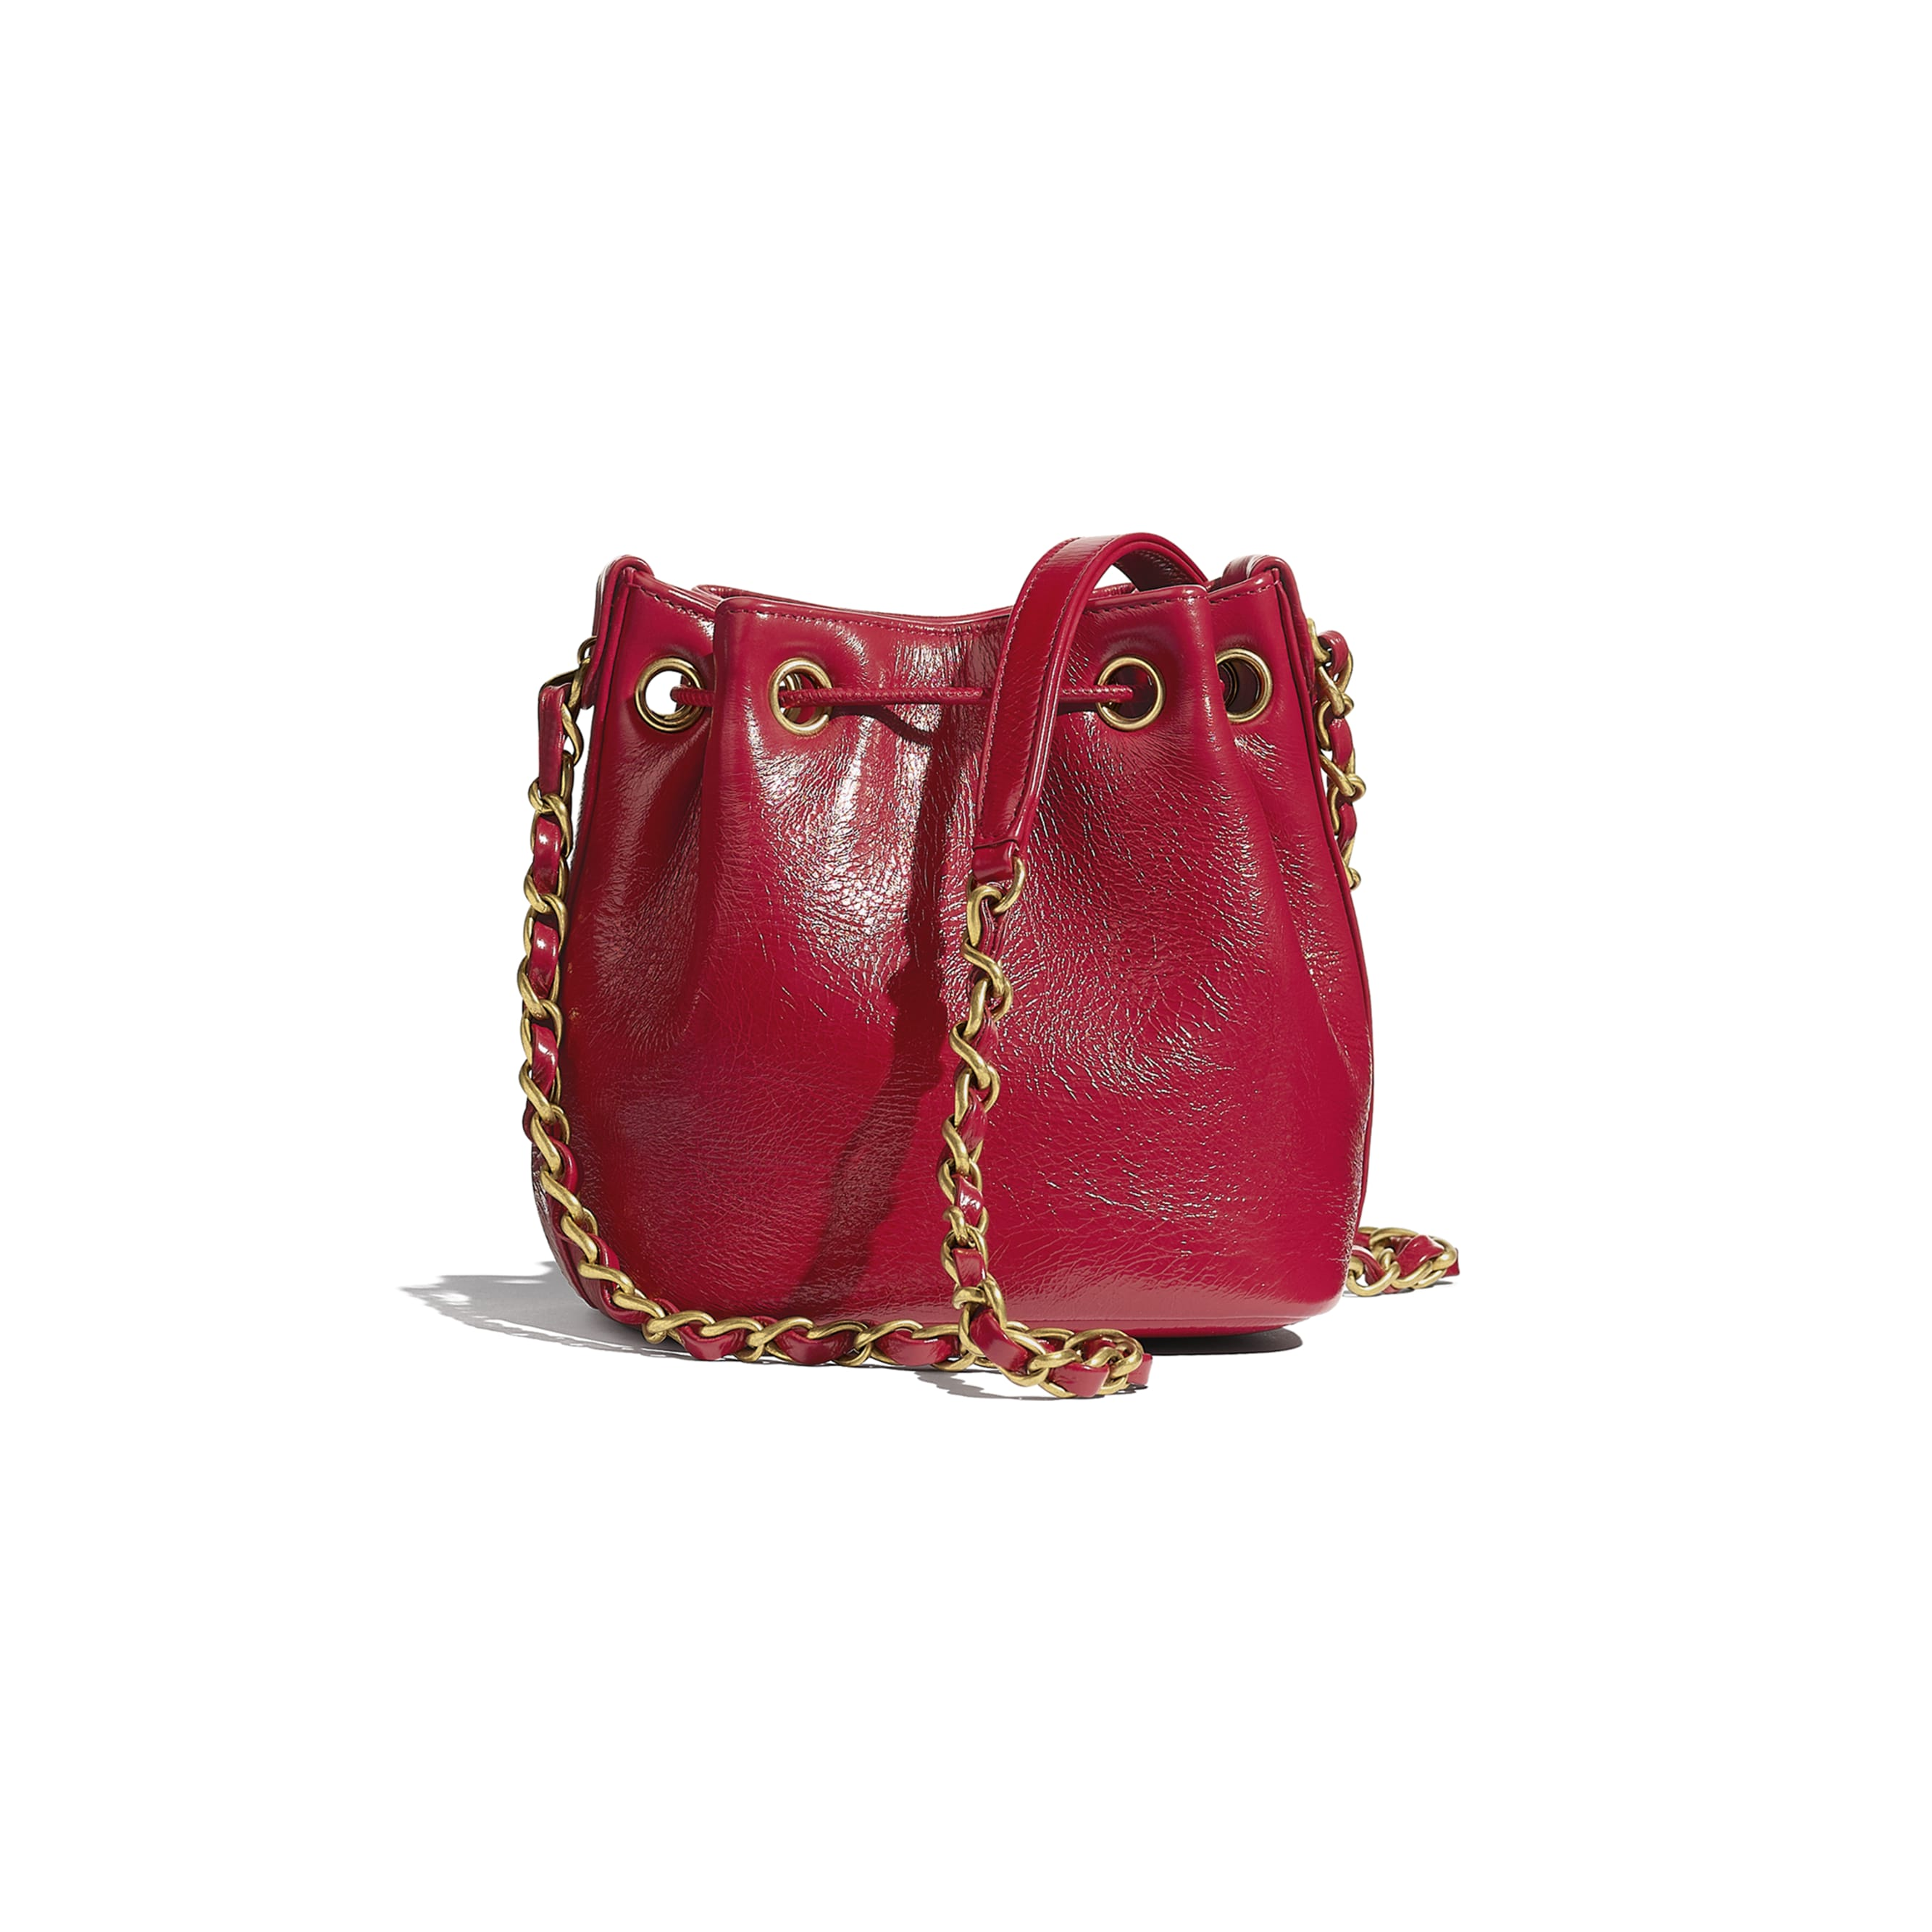 Drawstring Bag - Red - Shiny Aged Calfskin & Gold-Tone Metal - CHANEL - Alternative view - see standard sized version